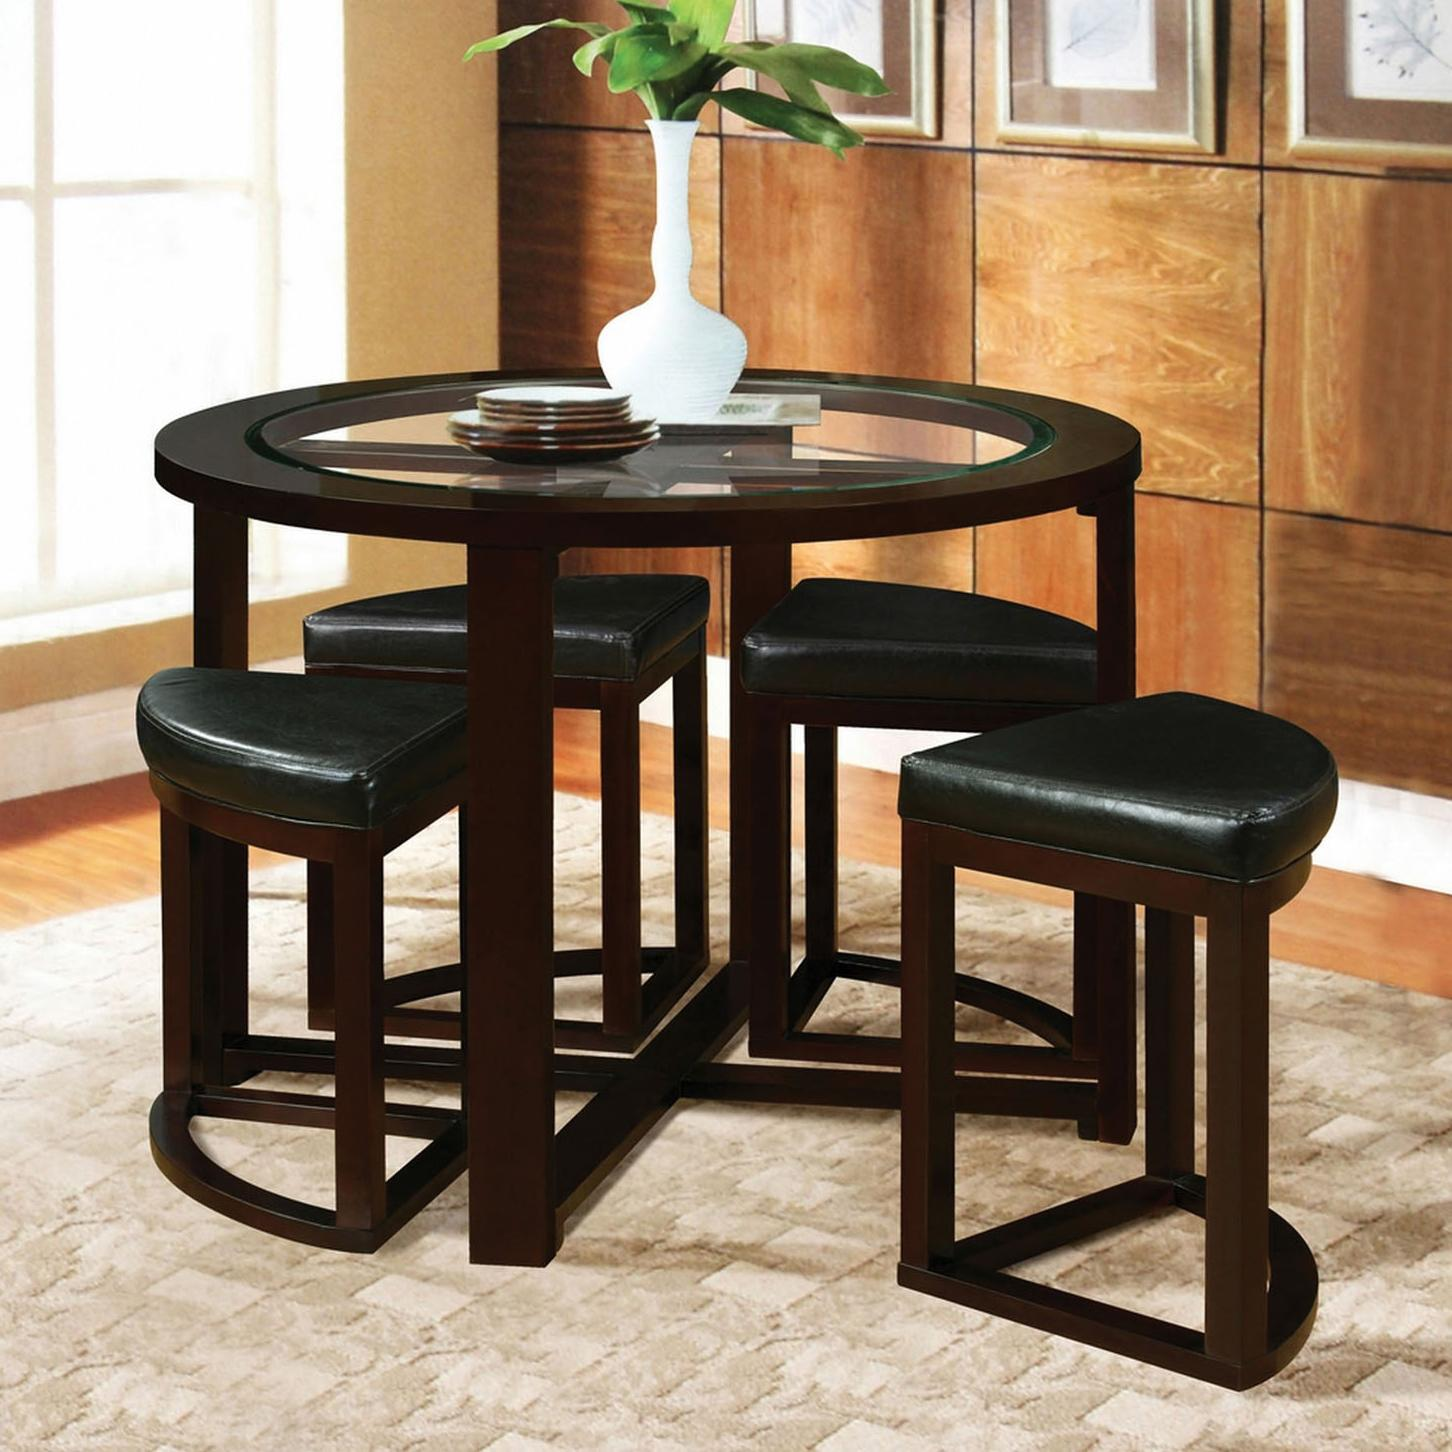 Acme Furniture Patia Counter Height Table - Item Number: 70360